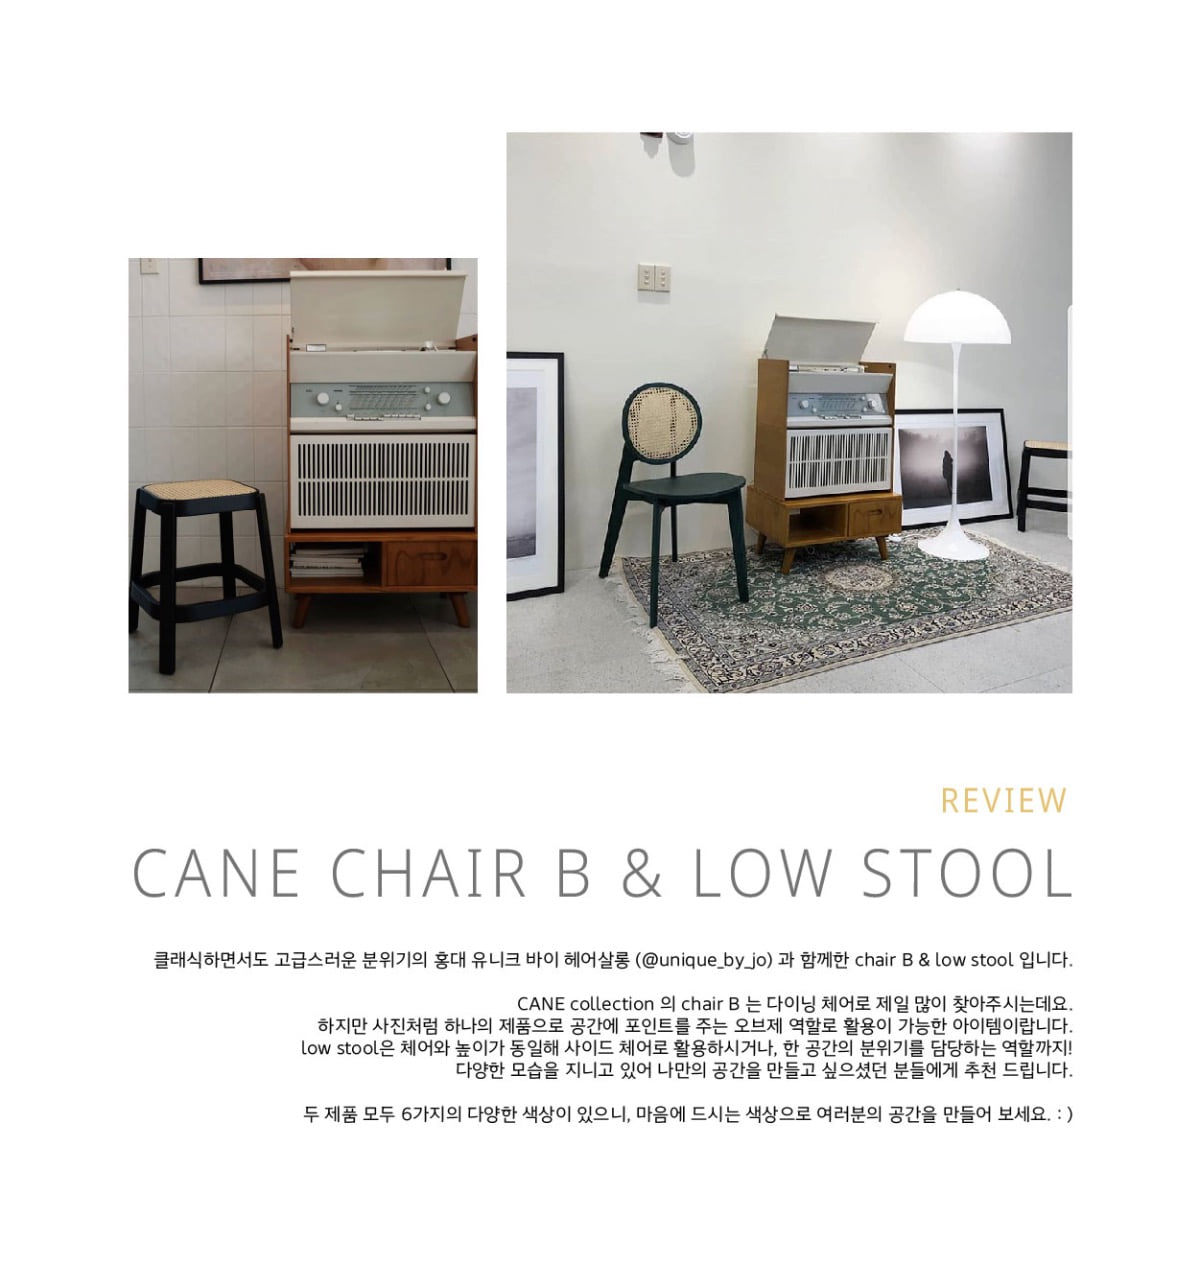 CANE chair B & low stool